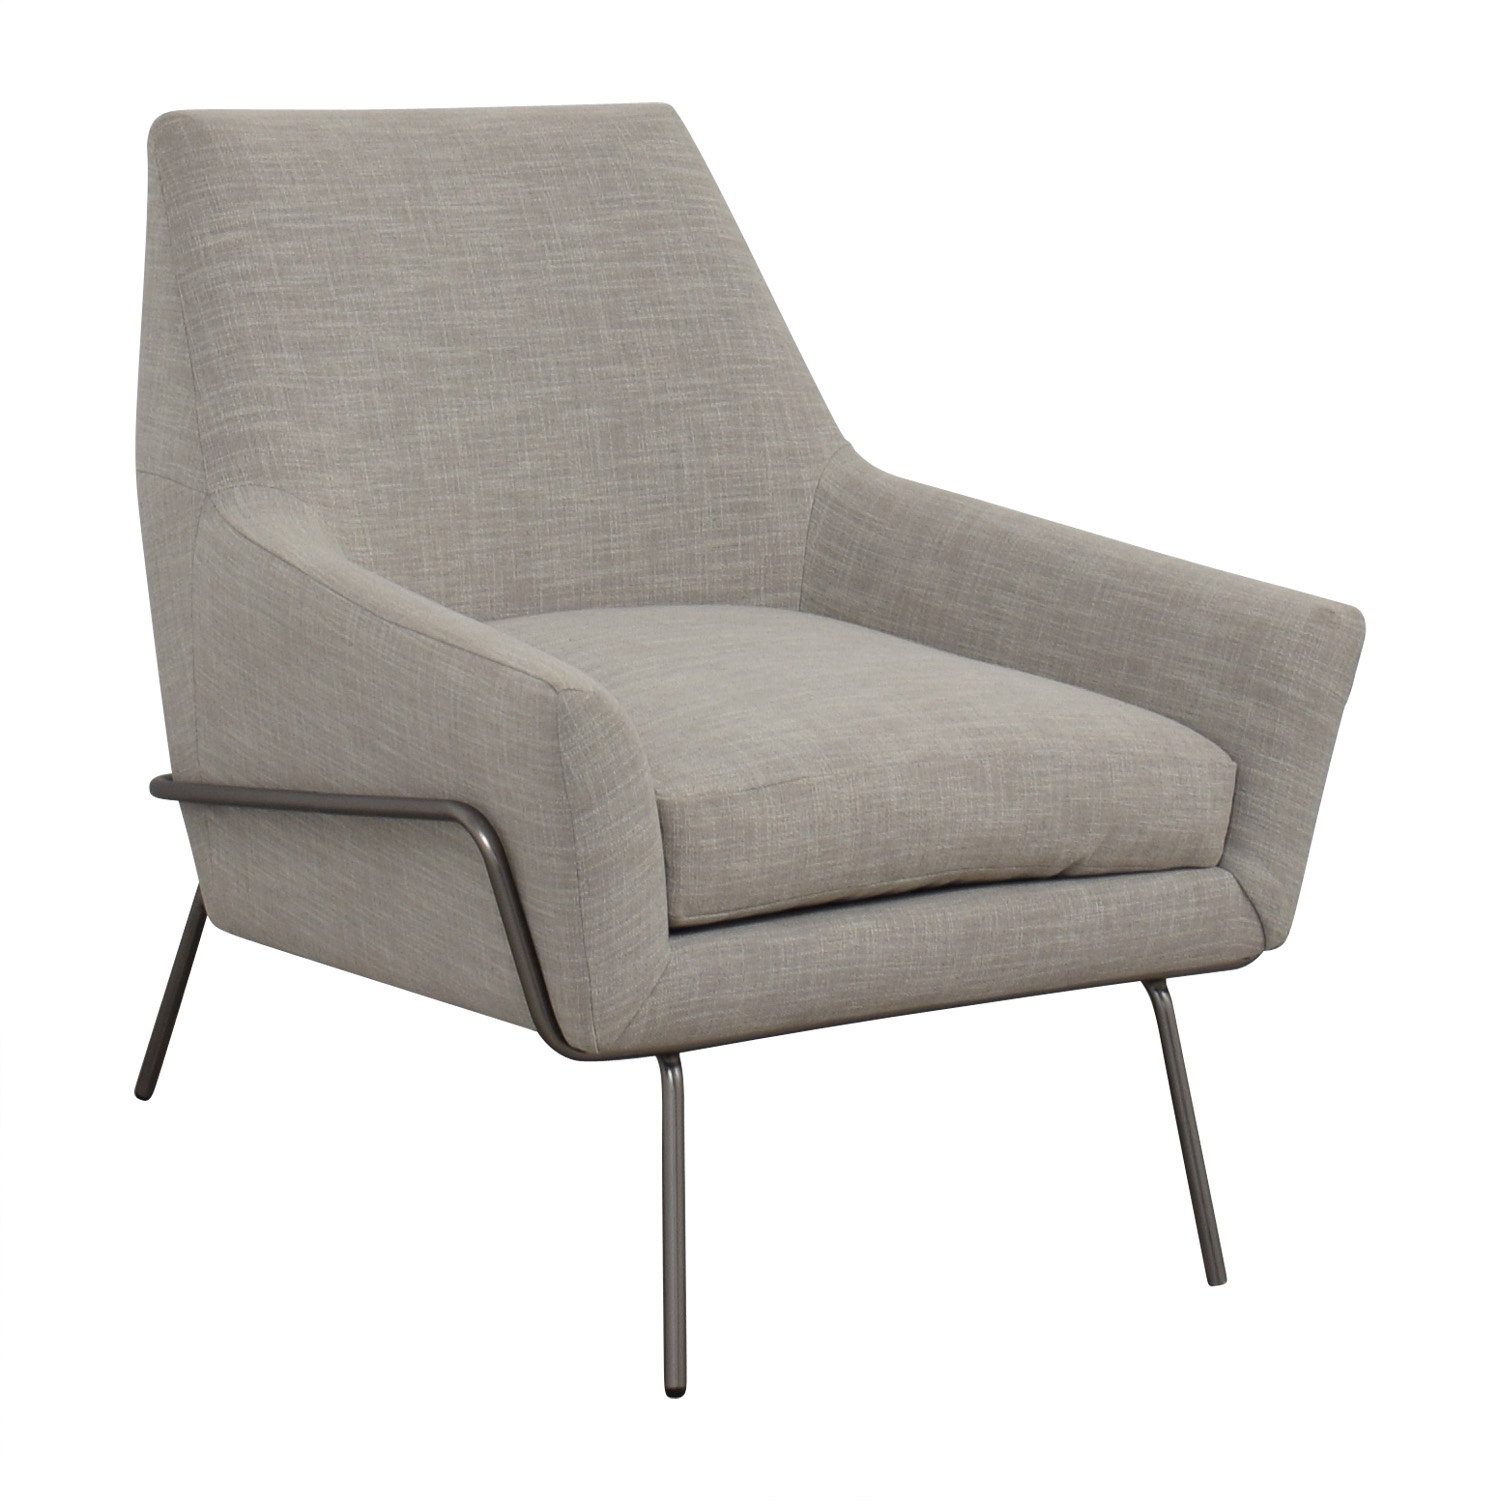 West Elm West Elm Lucas Grey Wire Base Chair dimensions